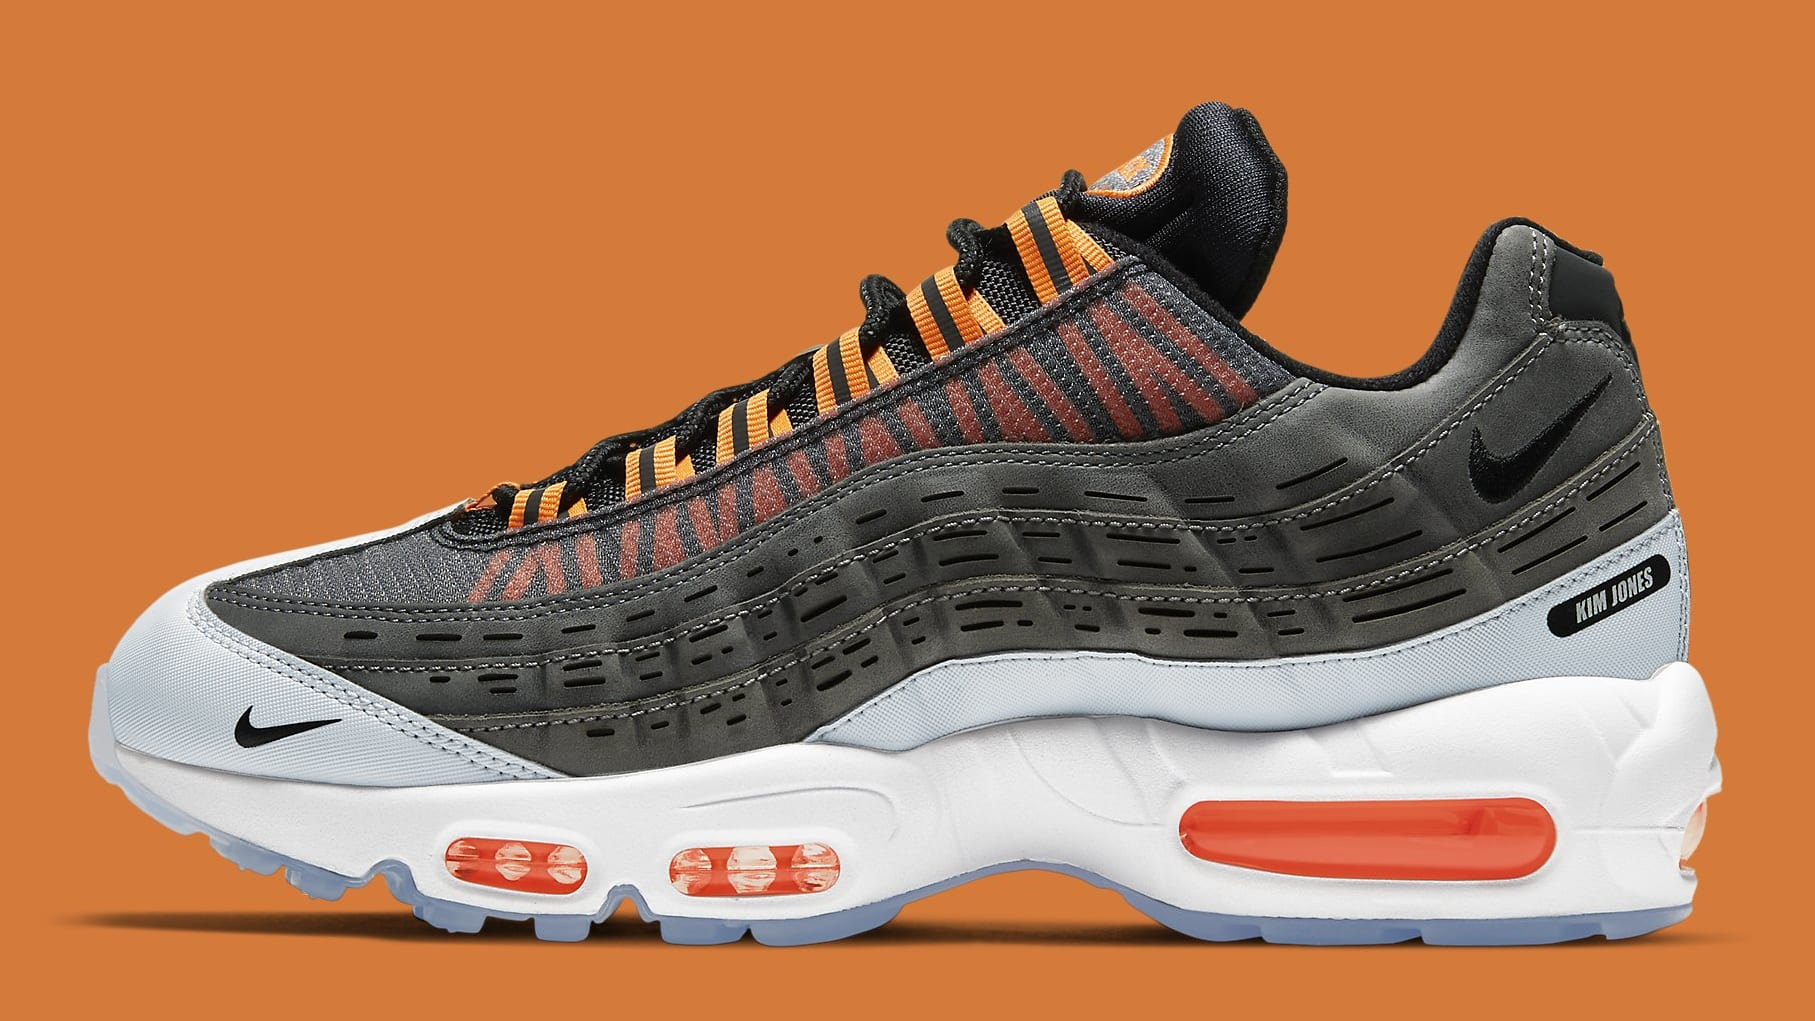 Kim Jones x Nike Air Max 95 Orange Release Date DD1871-001 Profile